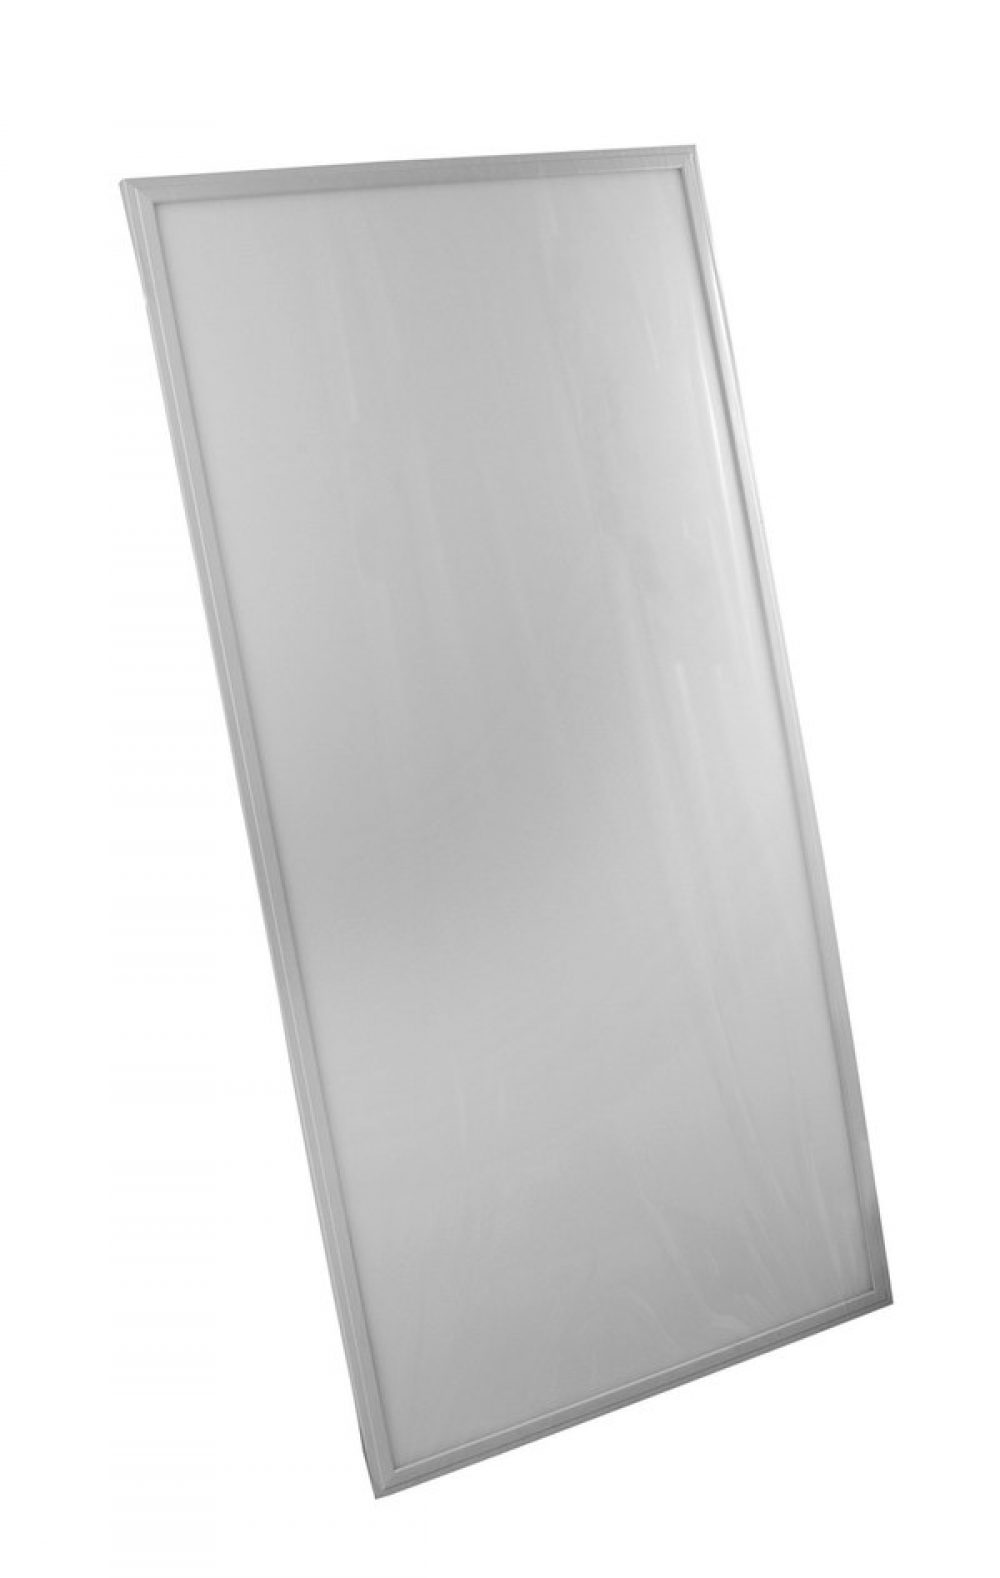 LED Panel Light AU01-PL12060-60W/5K-N